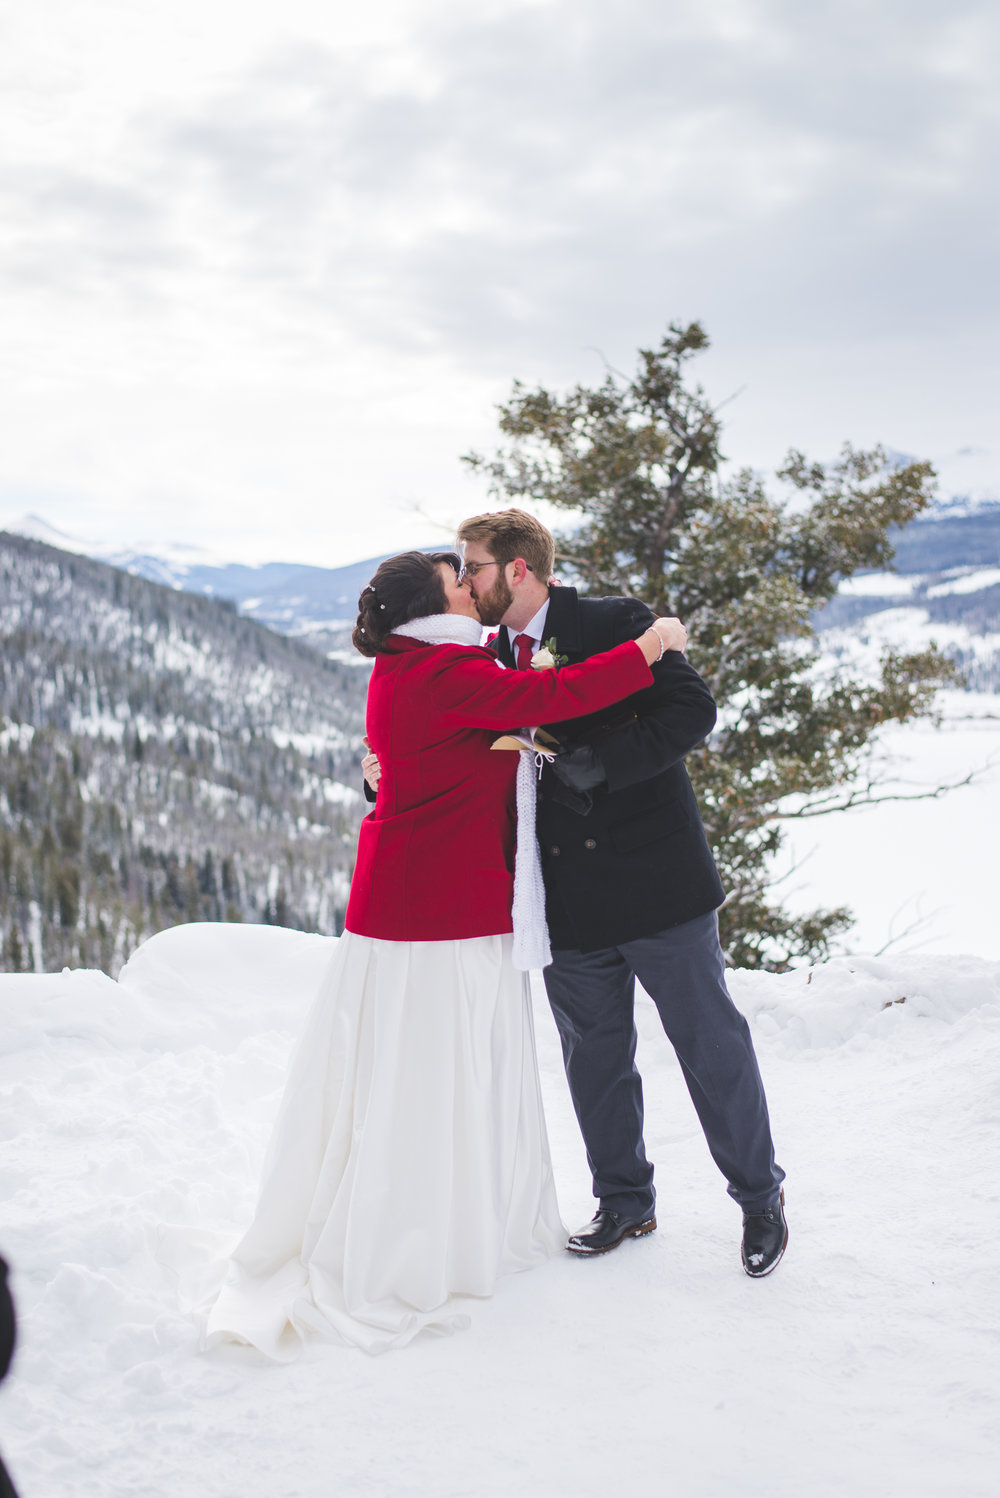 beautiful Colorado destination elopement in the mountains during winter, near Breckenridge, Colorado